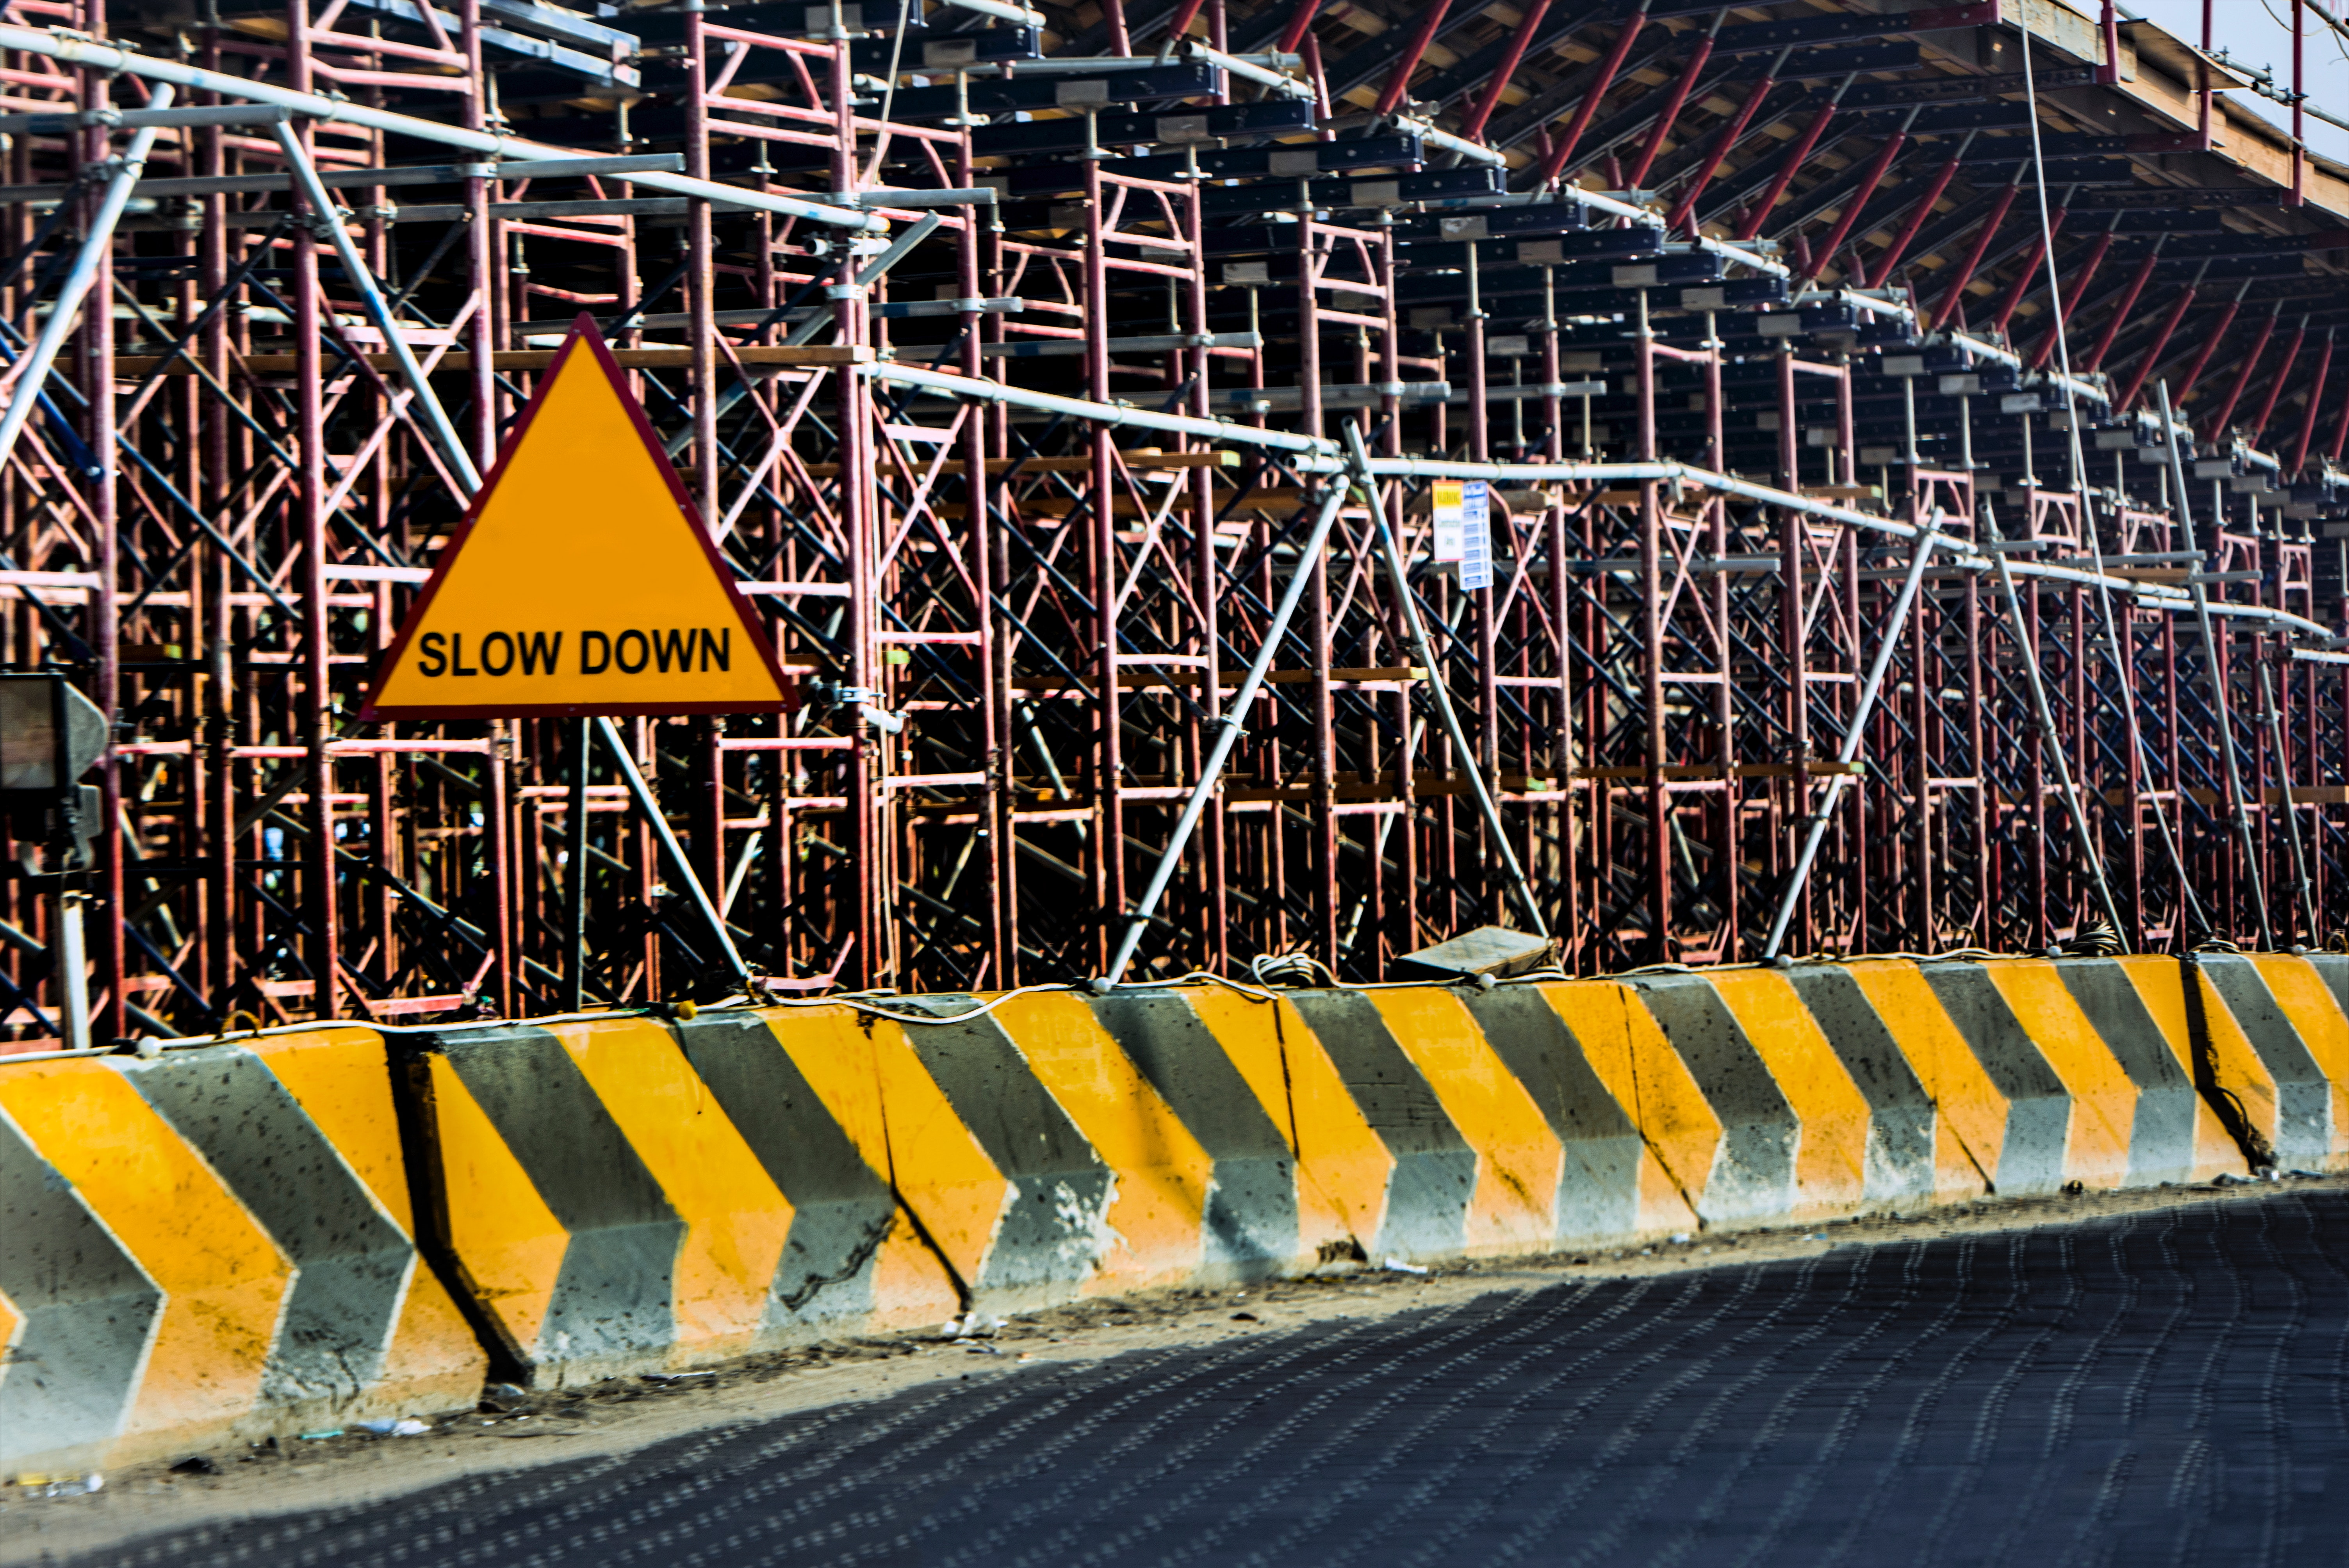 Yellow And Black Road Concrete Barrier, Barriers, Building, Construction, Danger, HQ Photo